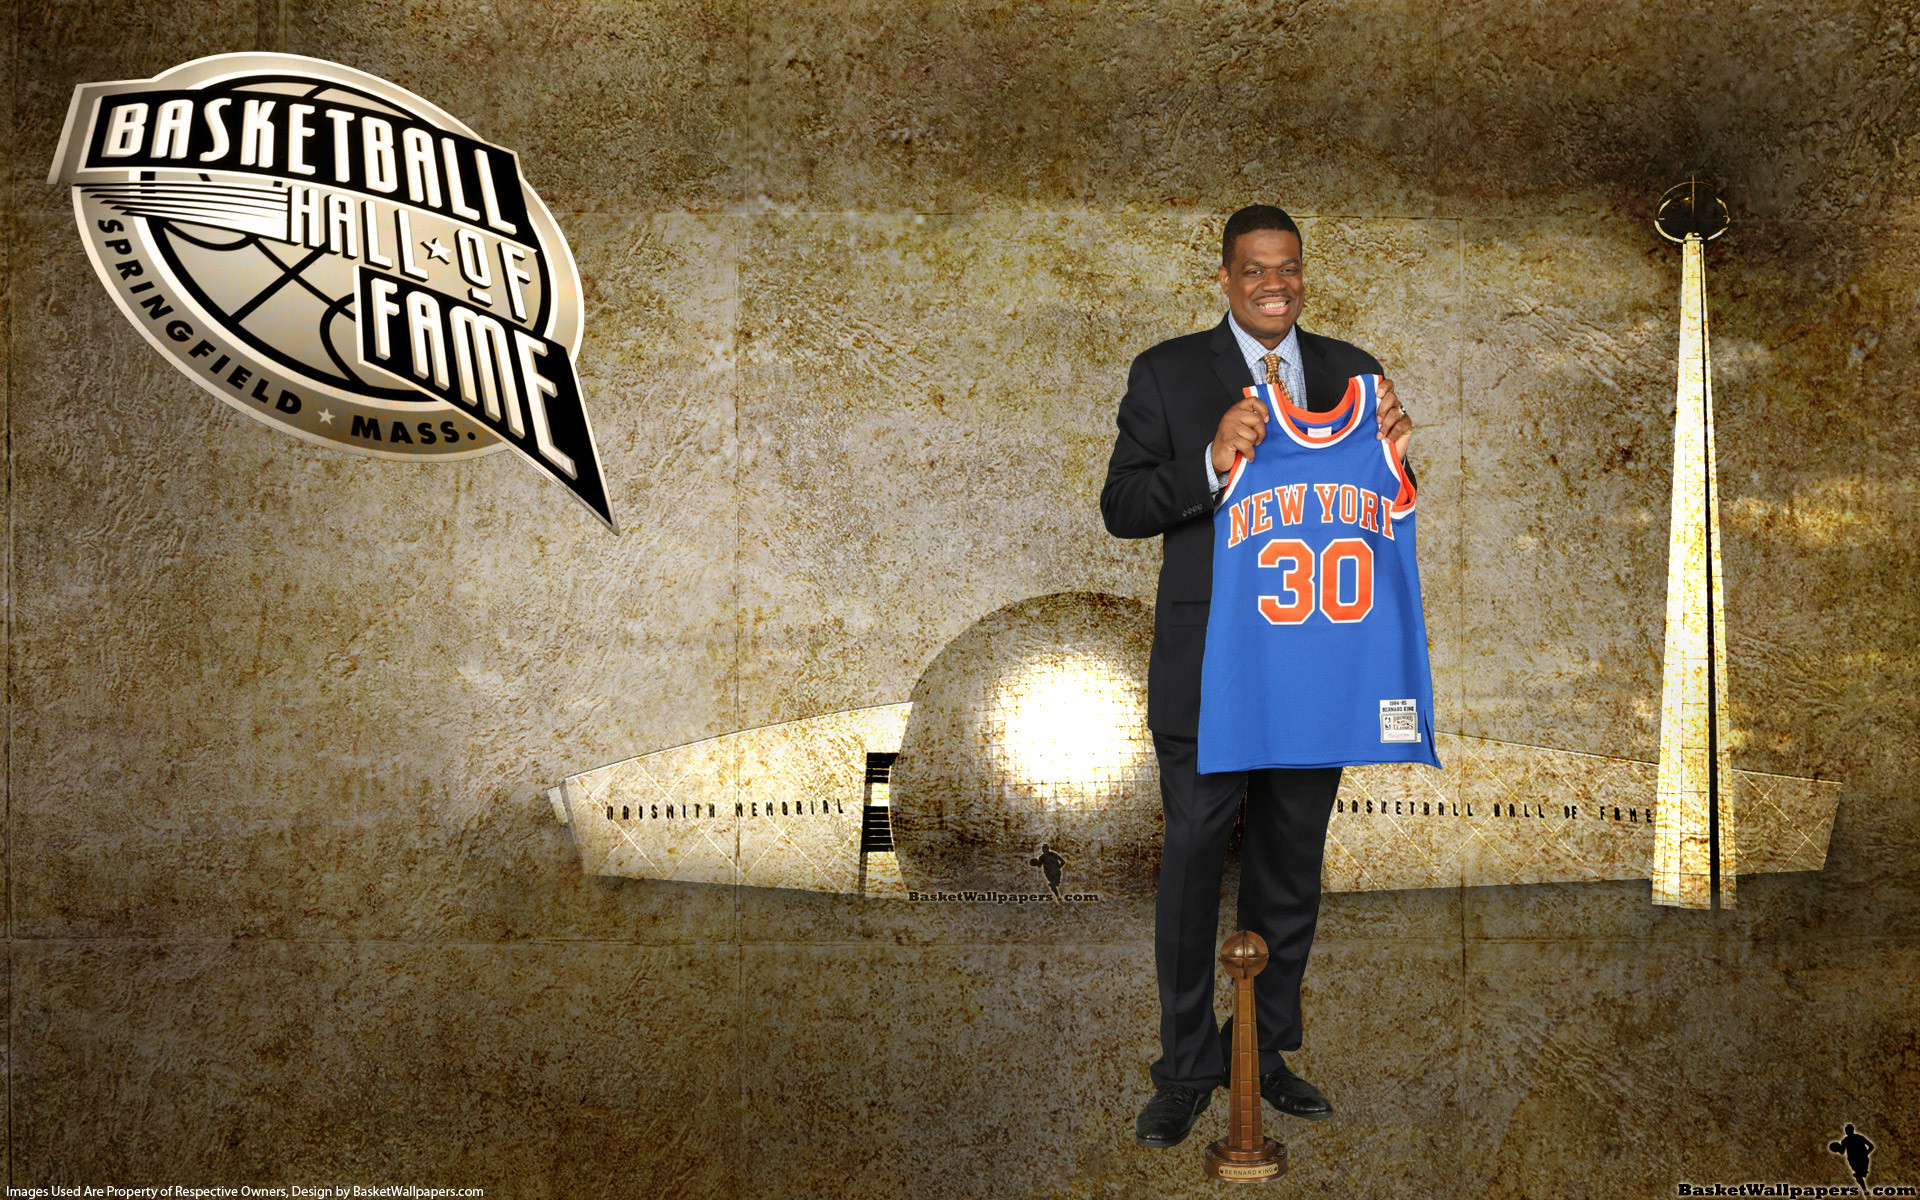 1920x1200 NBA Wallpaper - Bernard King, the Well-Liked Retired New York Knicks Player!